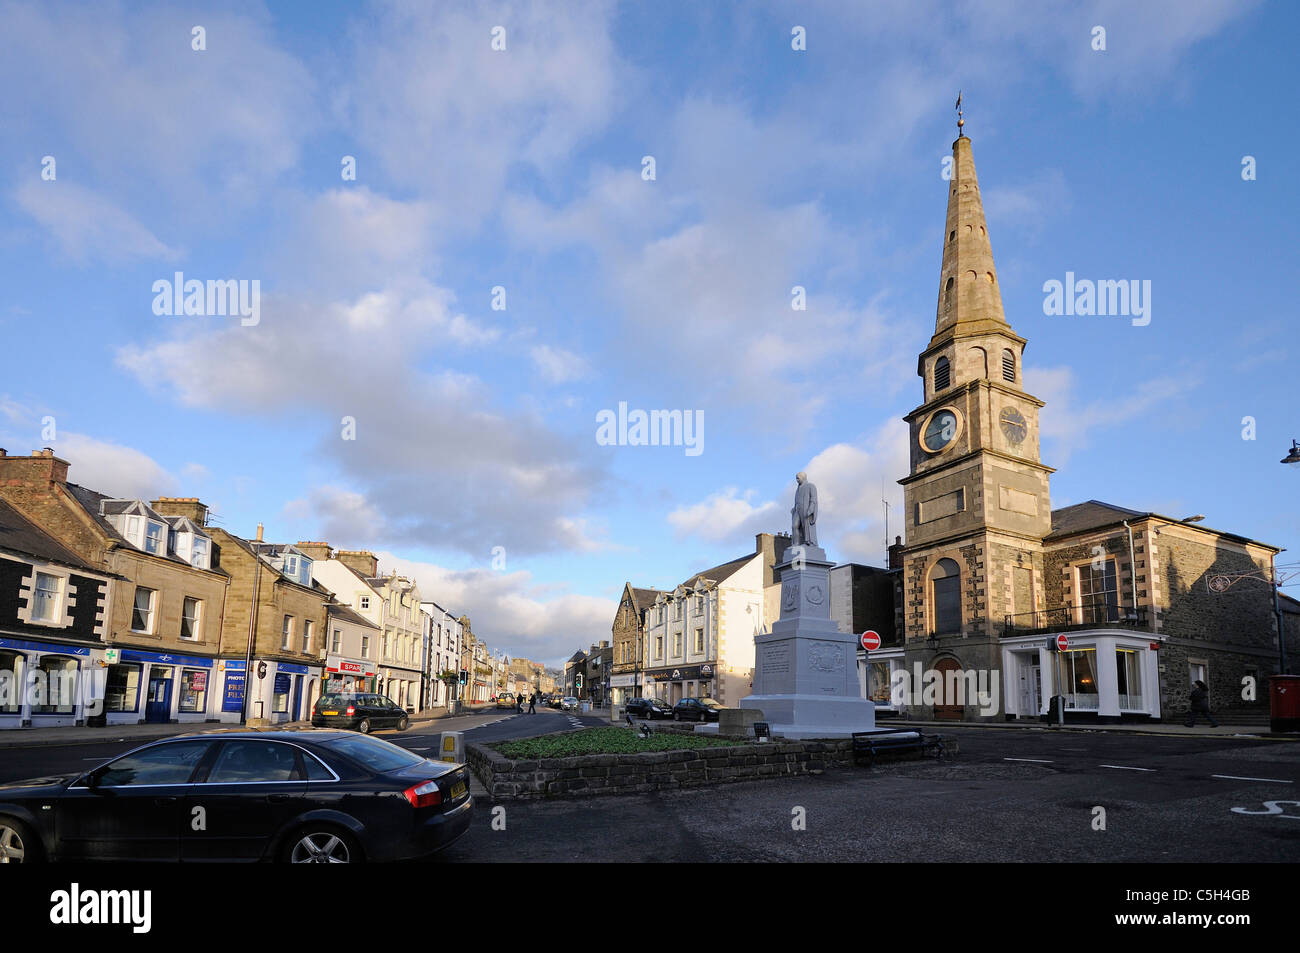 Selkirk The Main Square - Stock Image